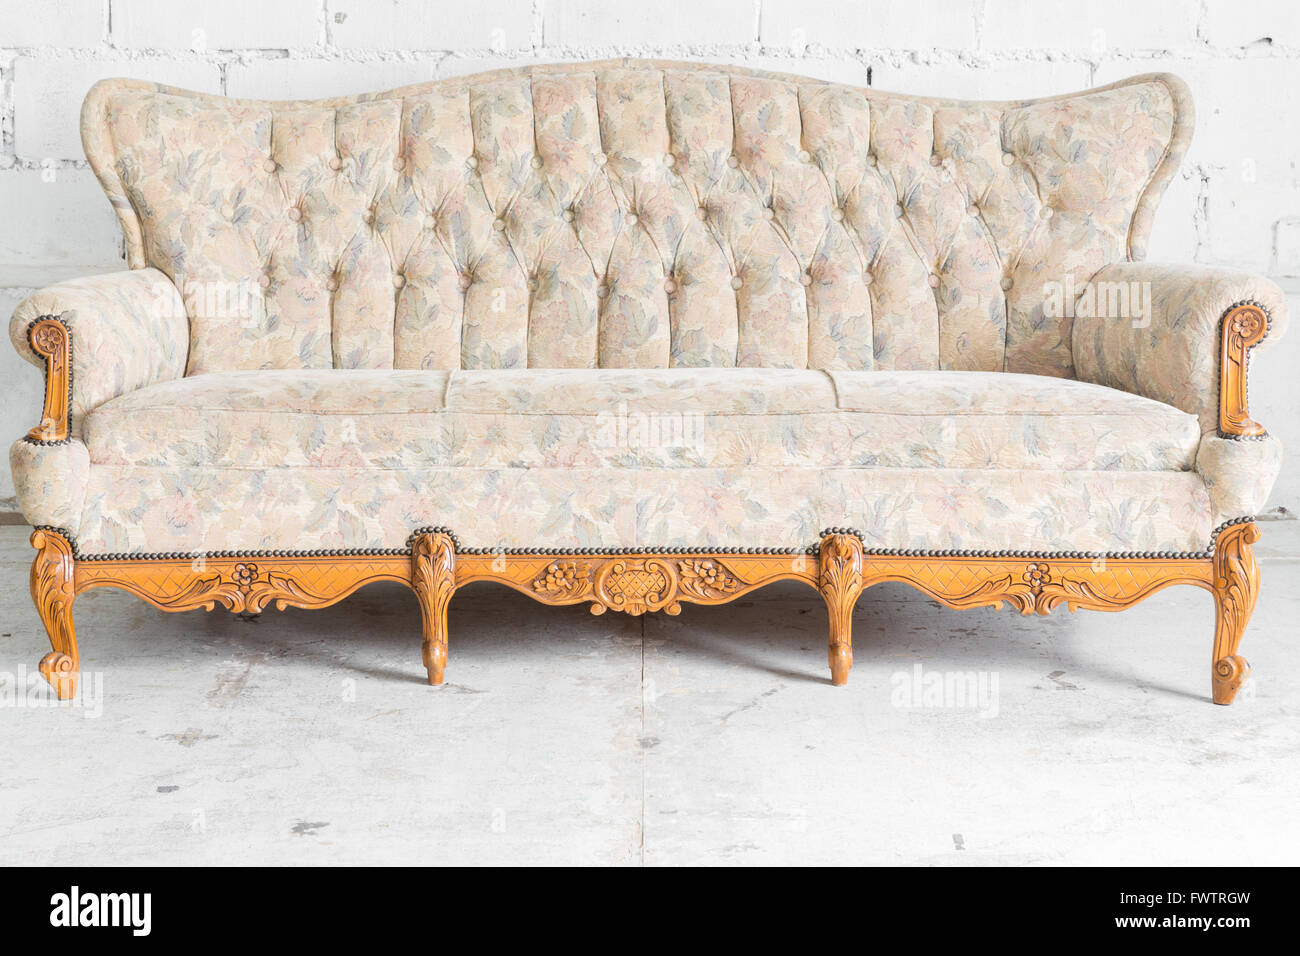 White vintage couch Modern Classic White Vintage Classical Style Sofa Bed Alamy White Vintage Classical Style Sofa Bed Stock Photo 101963593 Alamy